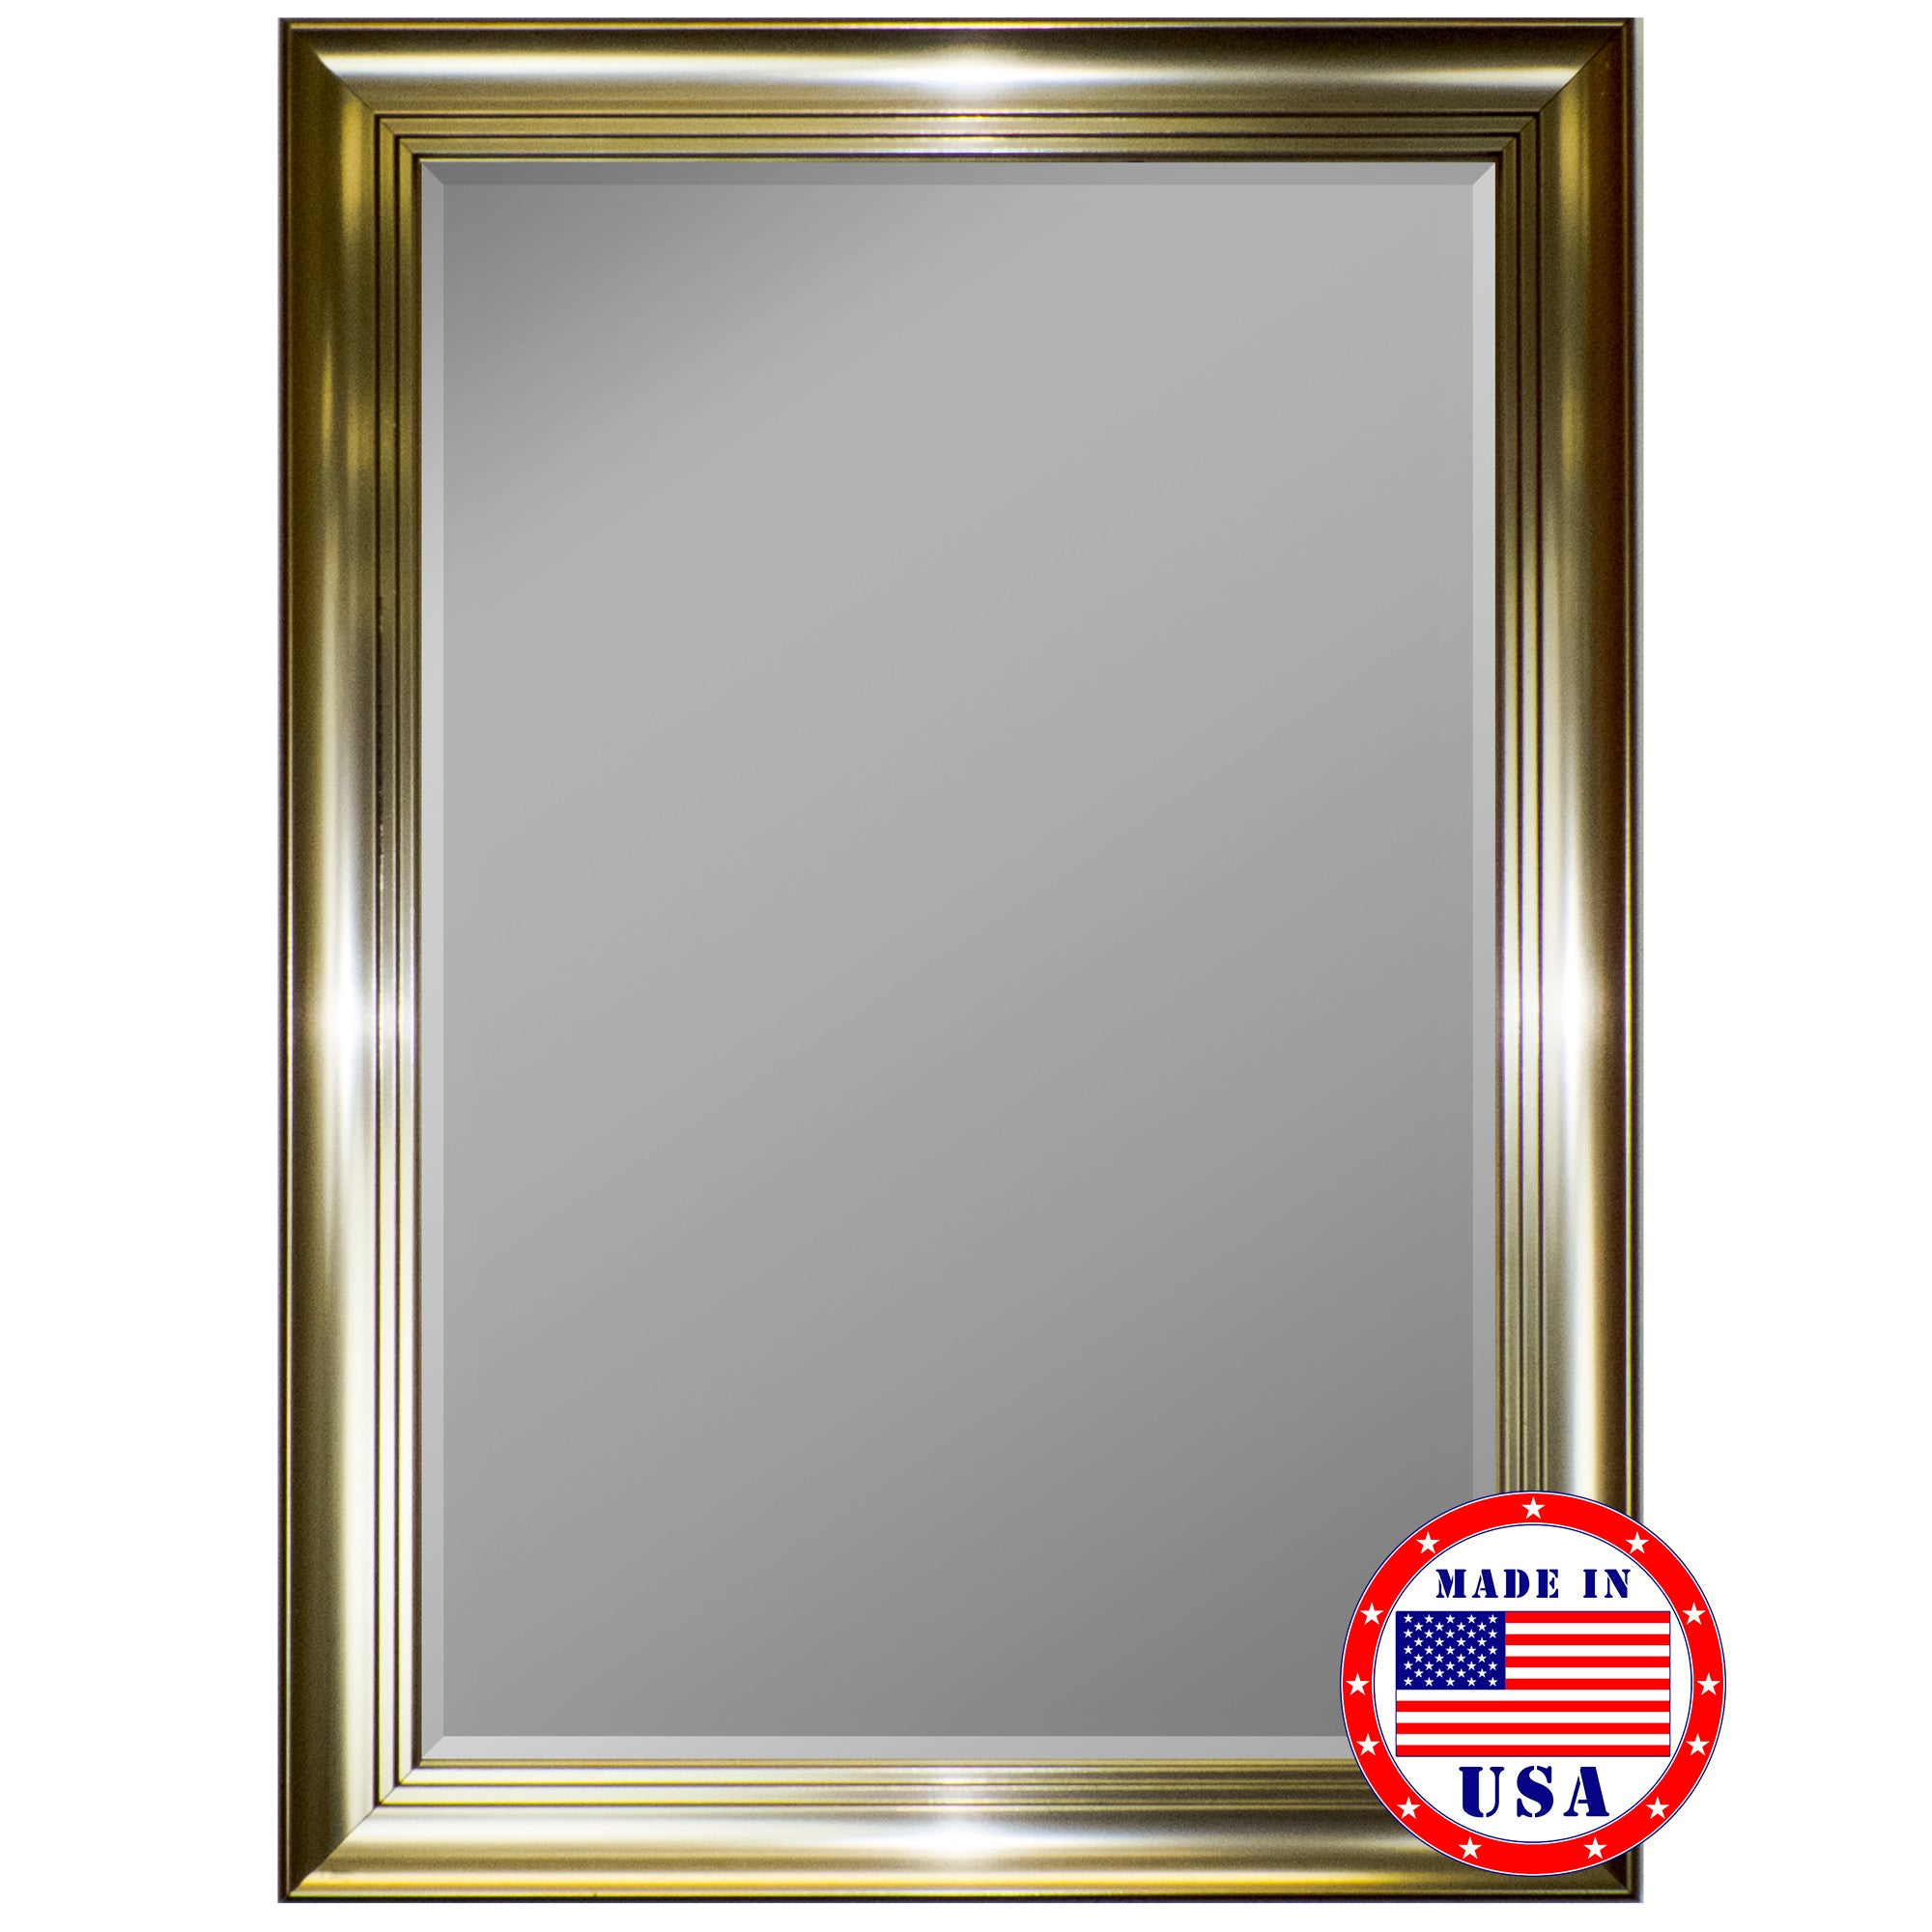 Framed Wall Mirrors 3 step pewter framed wall mirror – mirrorsmart